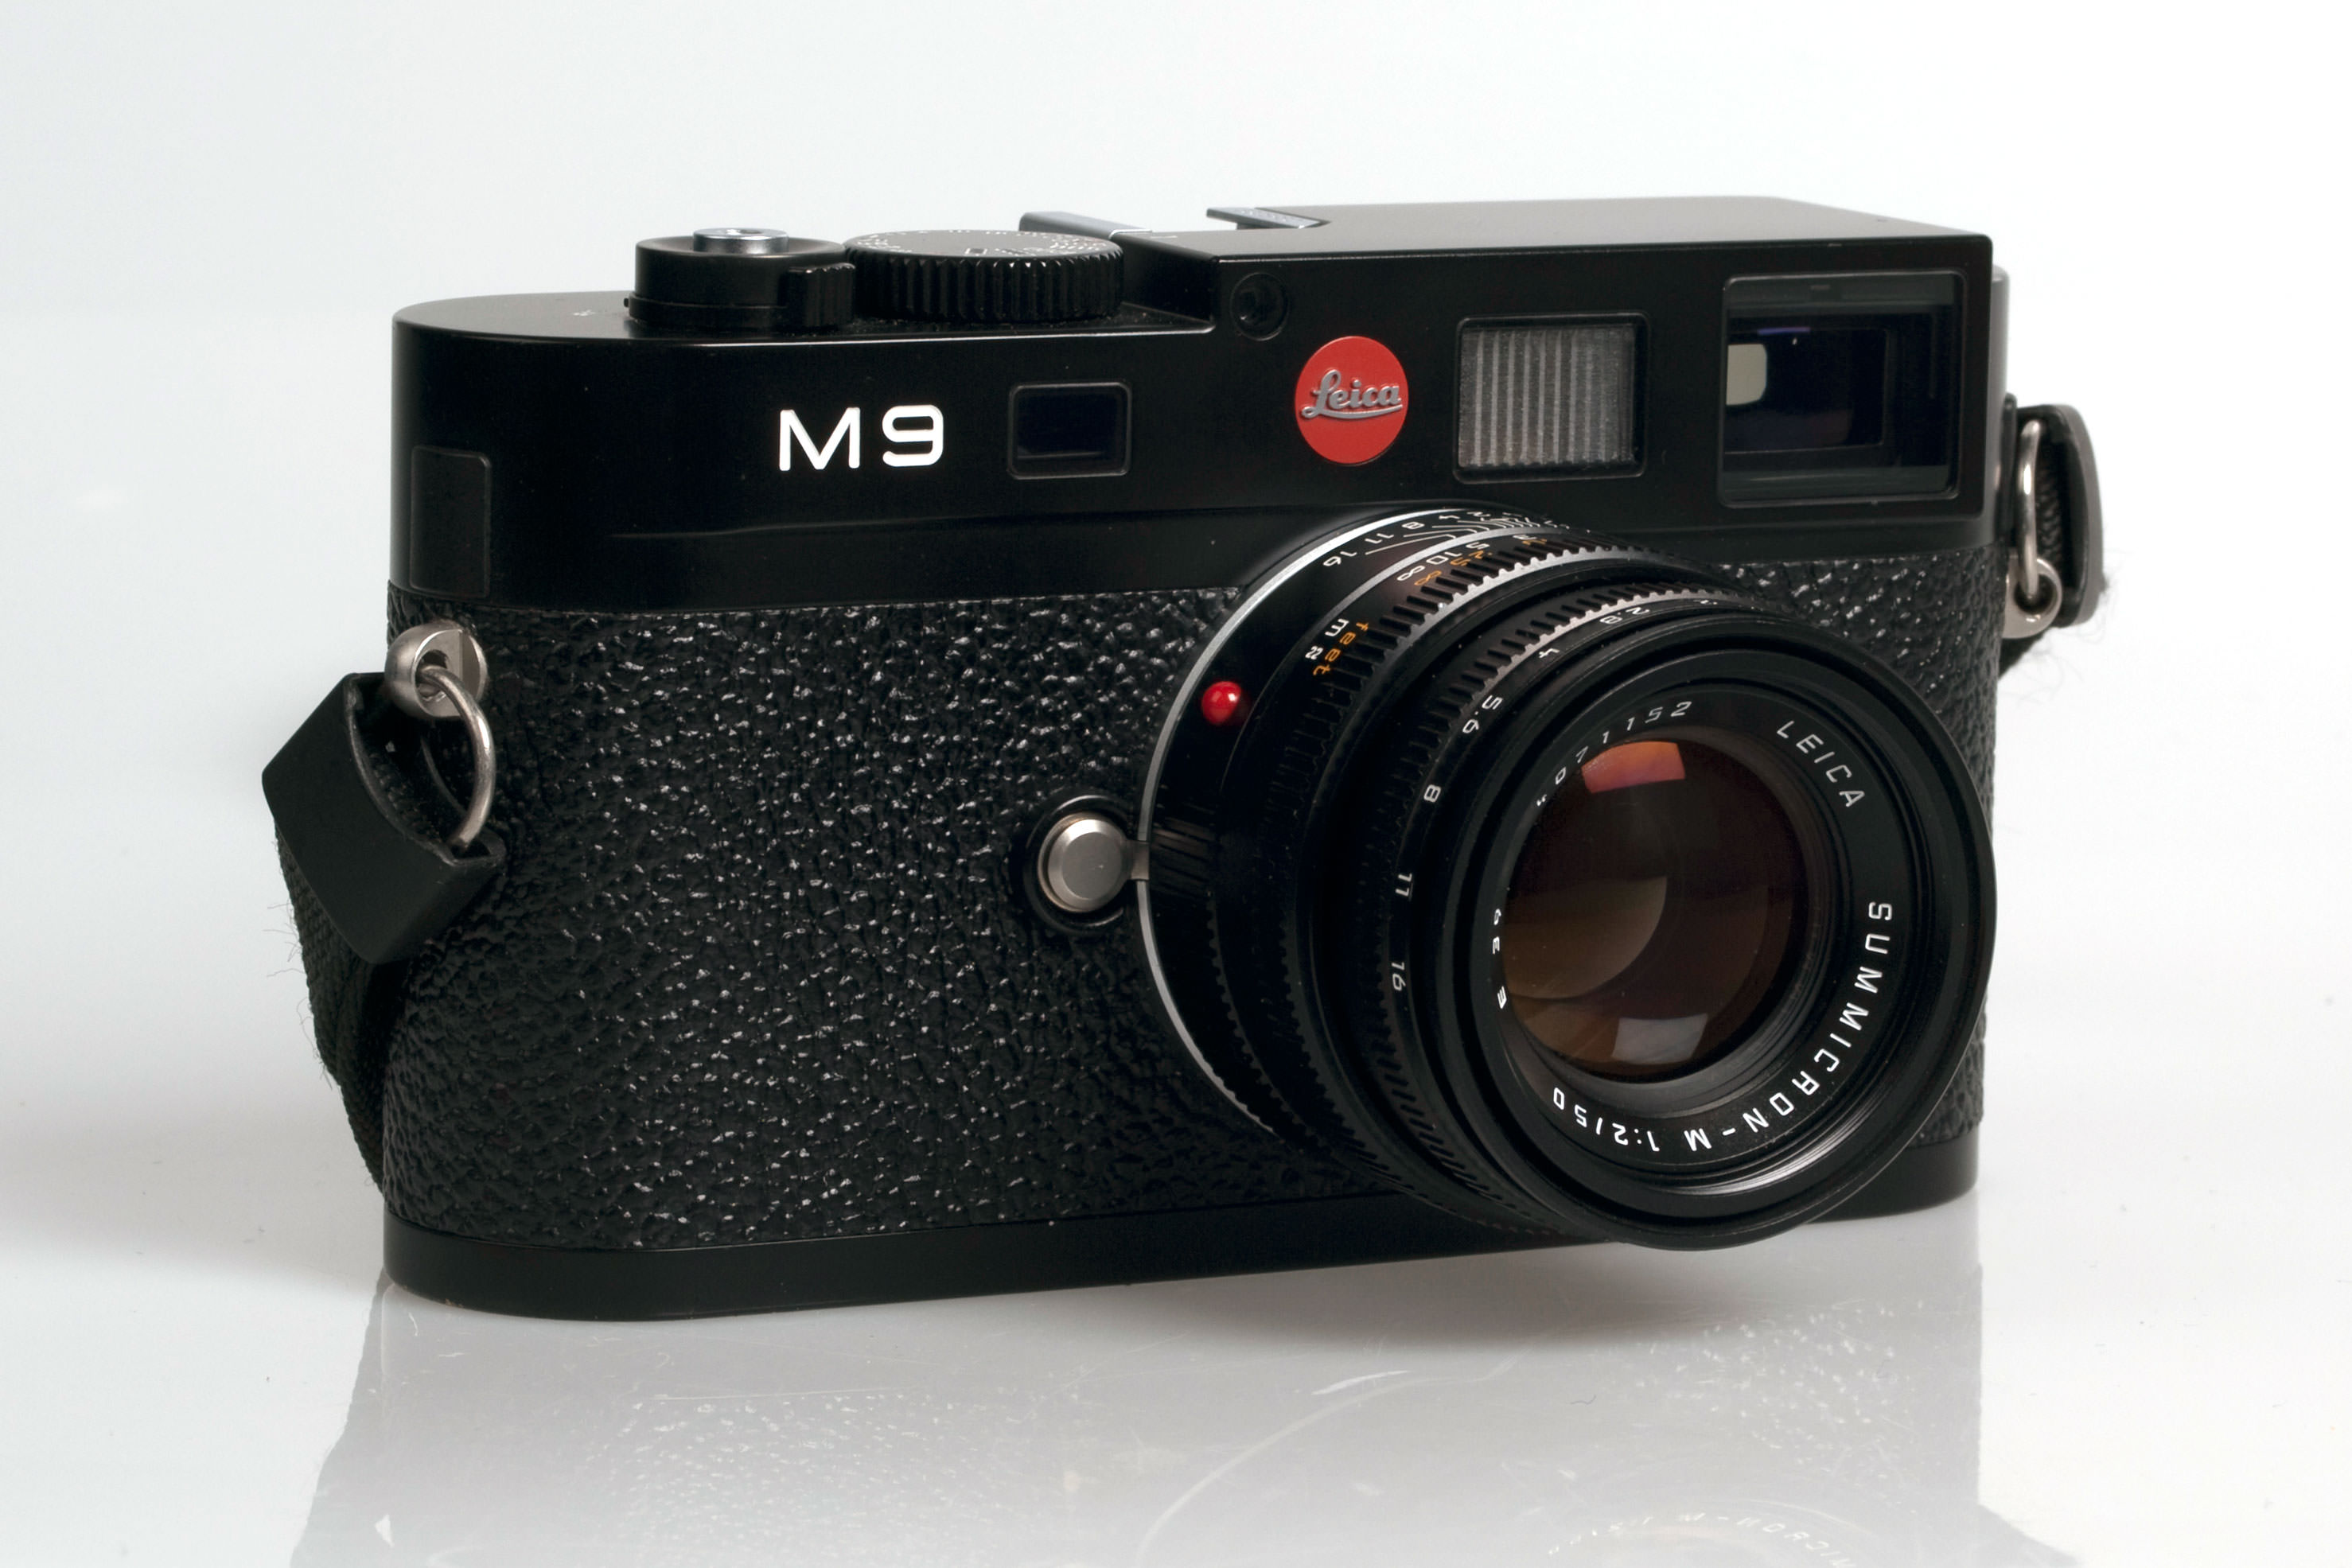 Leica M9 Digital Camera Review